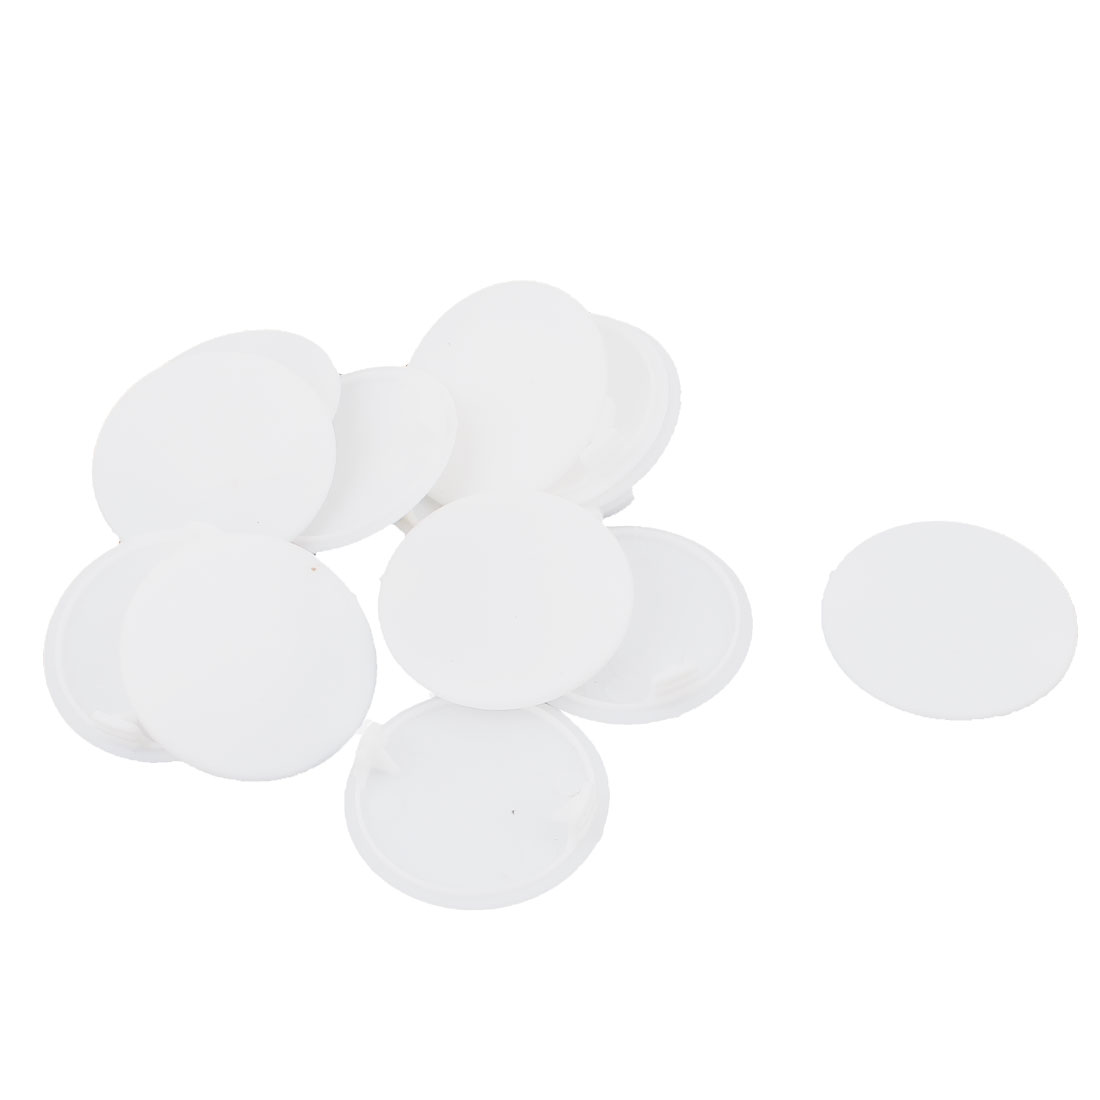 13pcs 40mm Dia White Plastic Round Furniture Pipe End Drilling Cover Plugs Caps Inserts